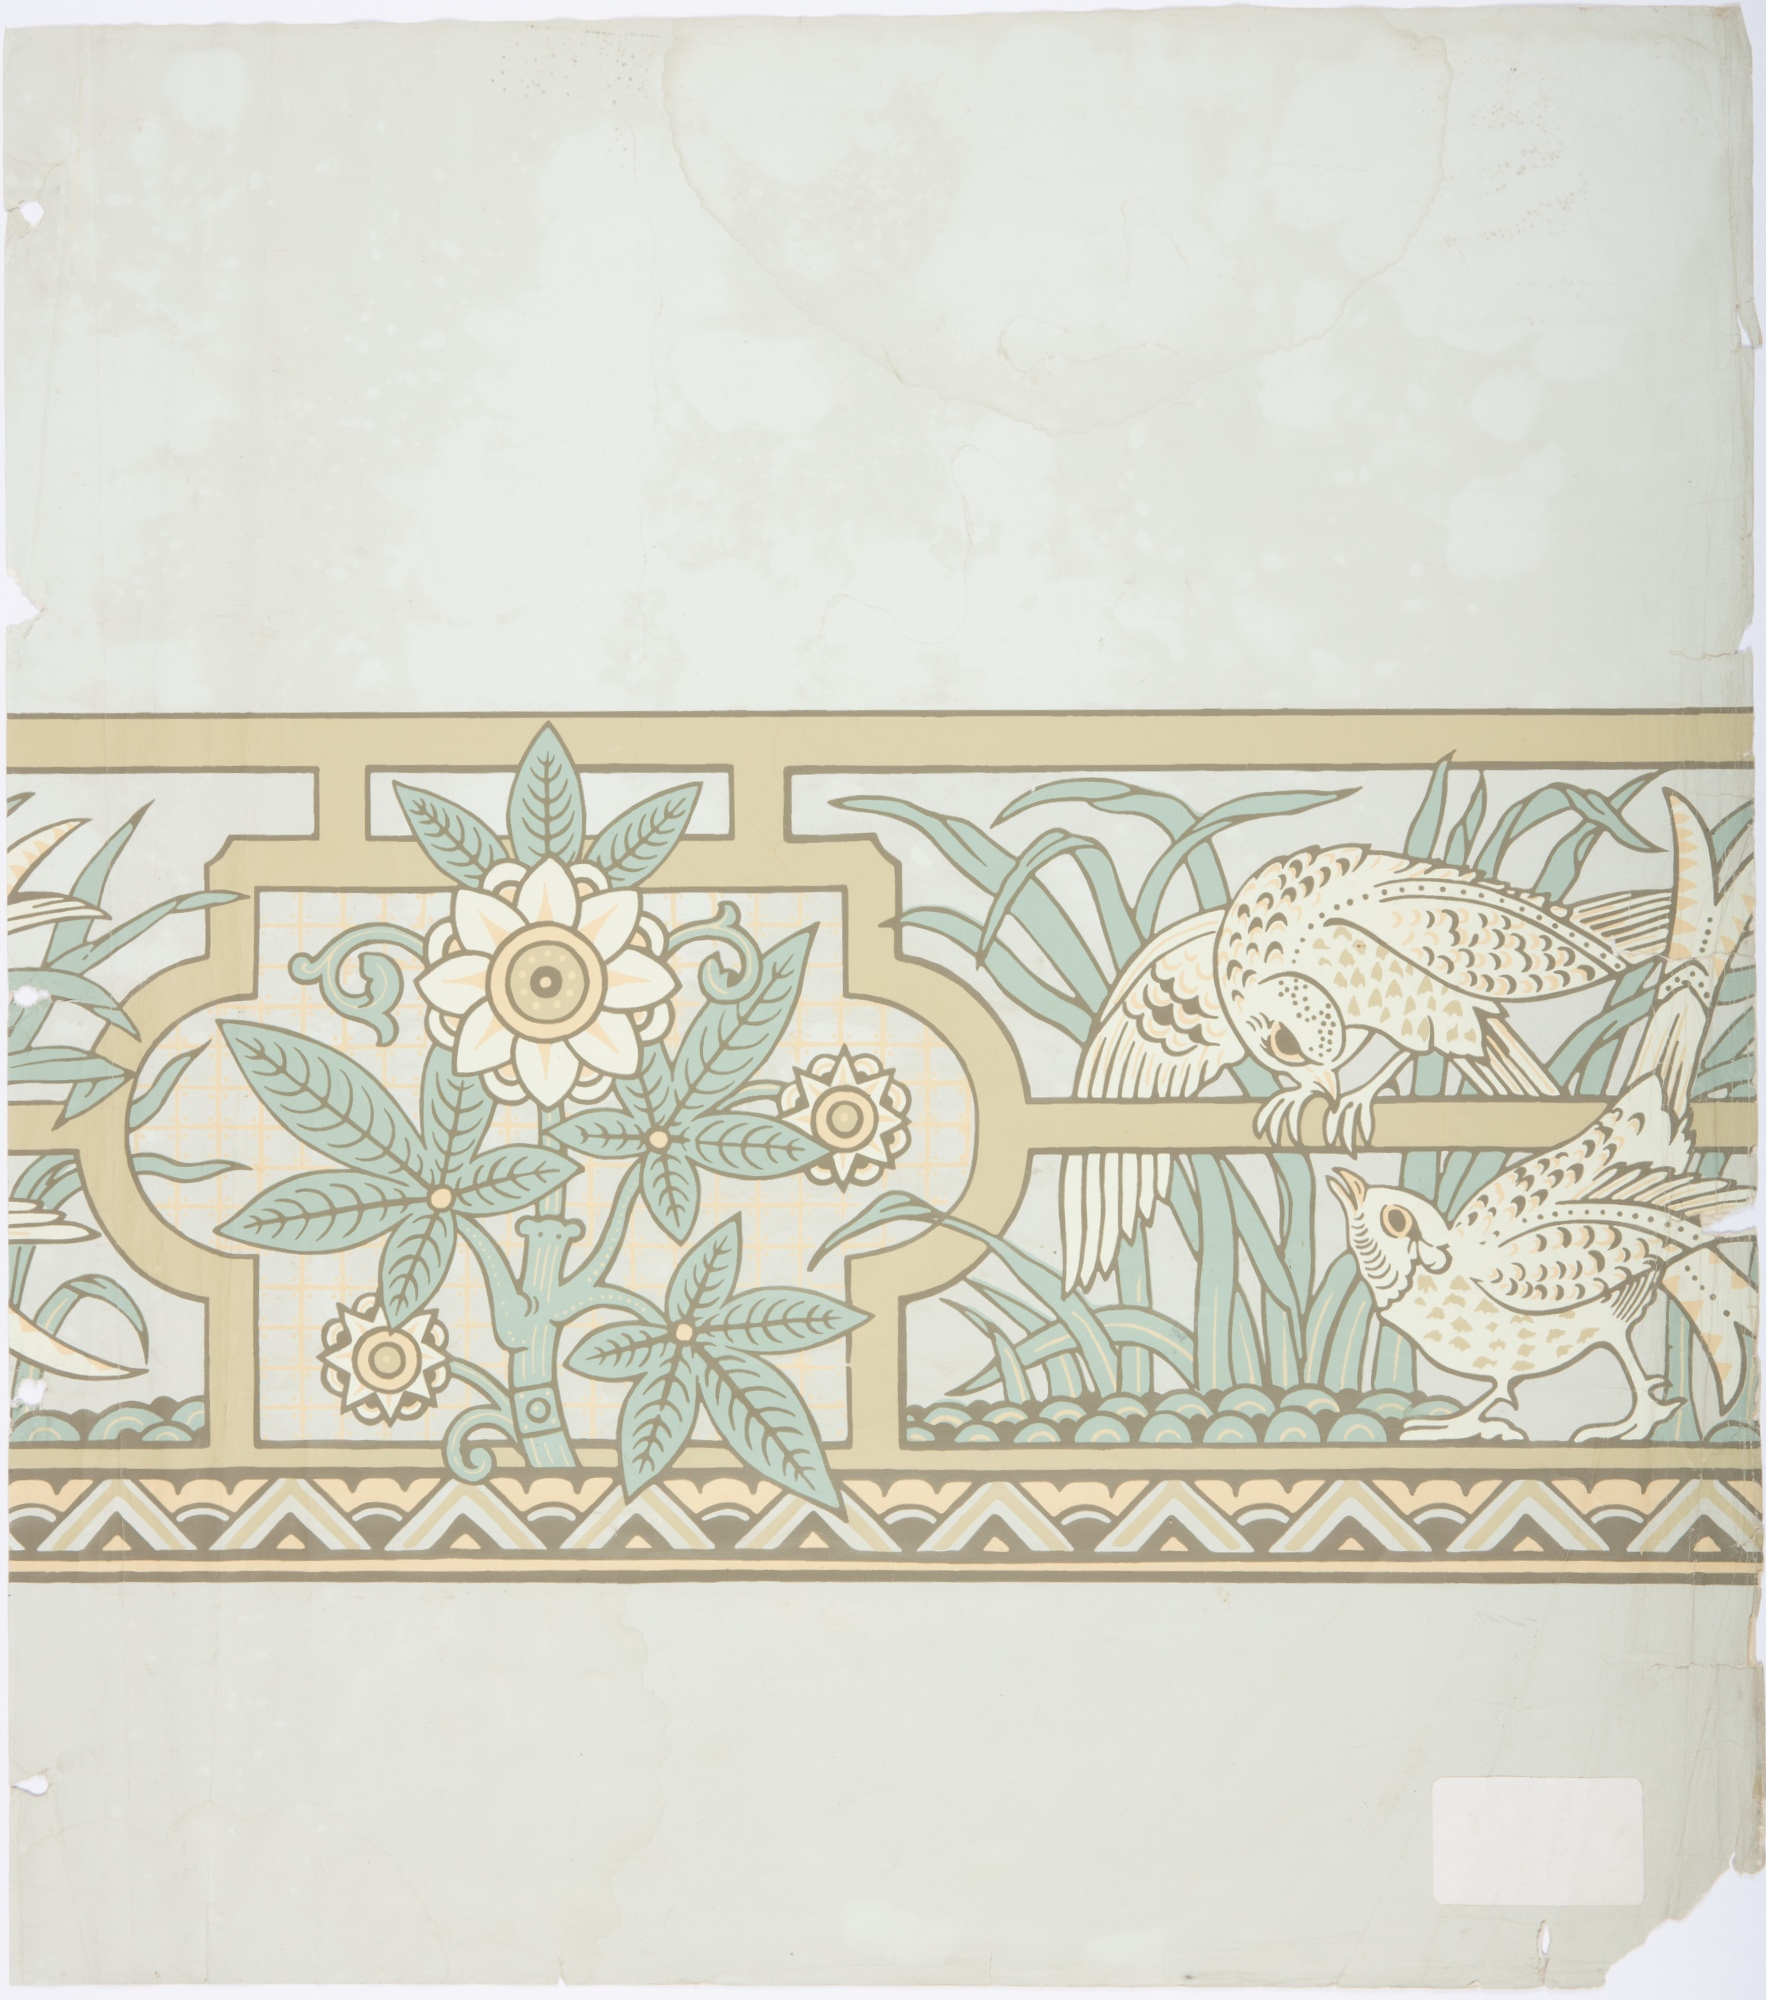 Stylized bird wallpaper frieze recreated for former Treasury Building, Sydney